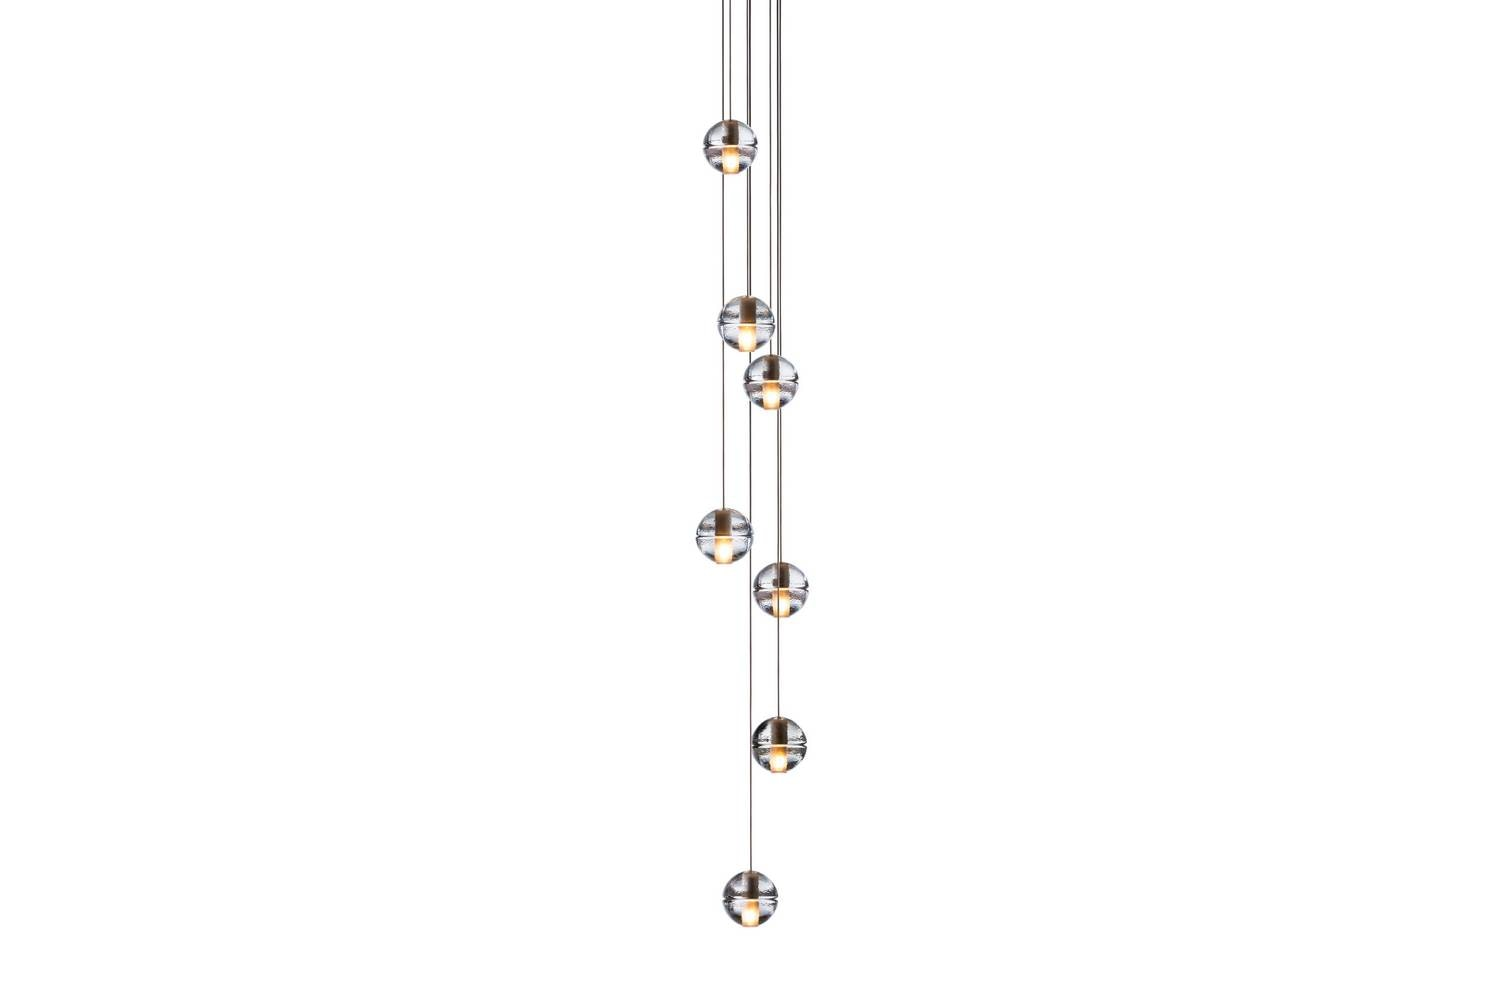 14.7 Standard Suspension Lamp by Omer Arbel for Bocci